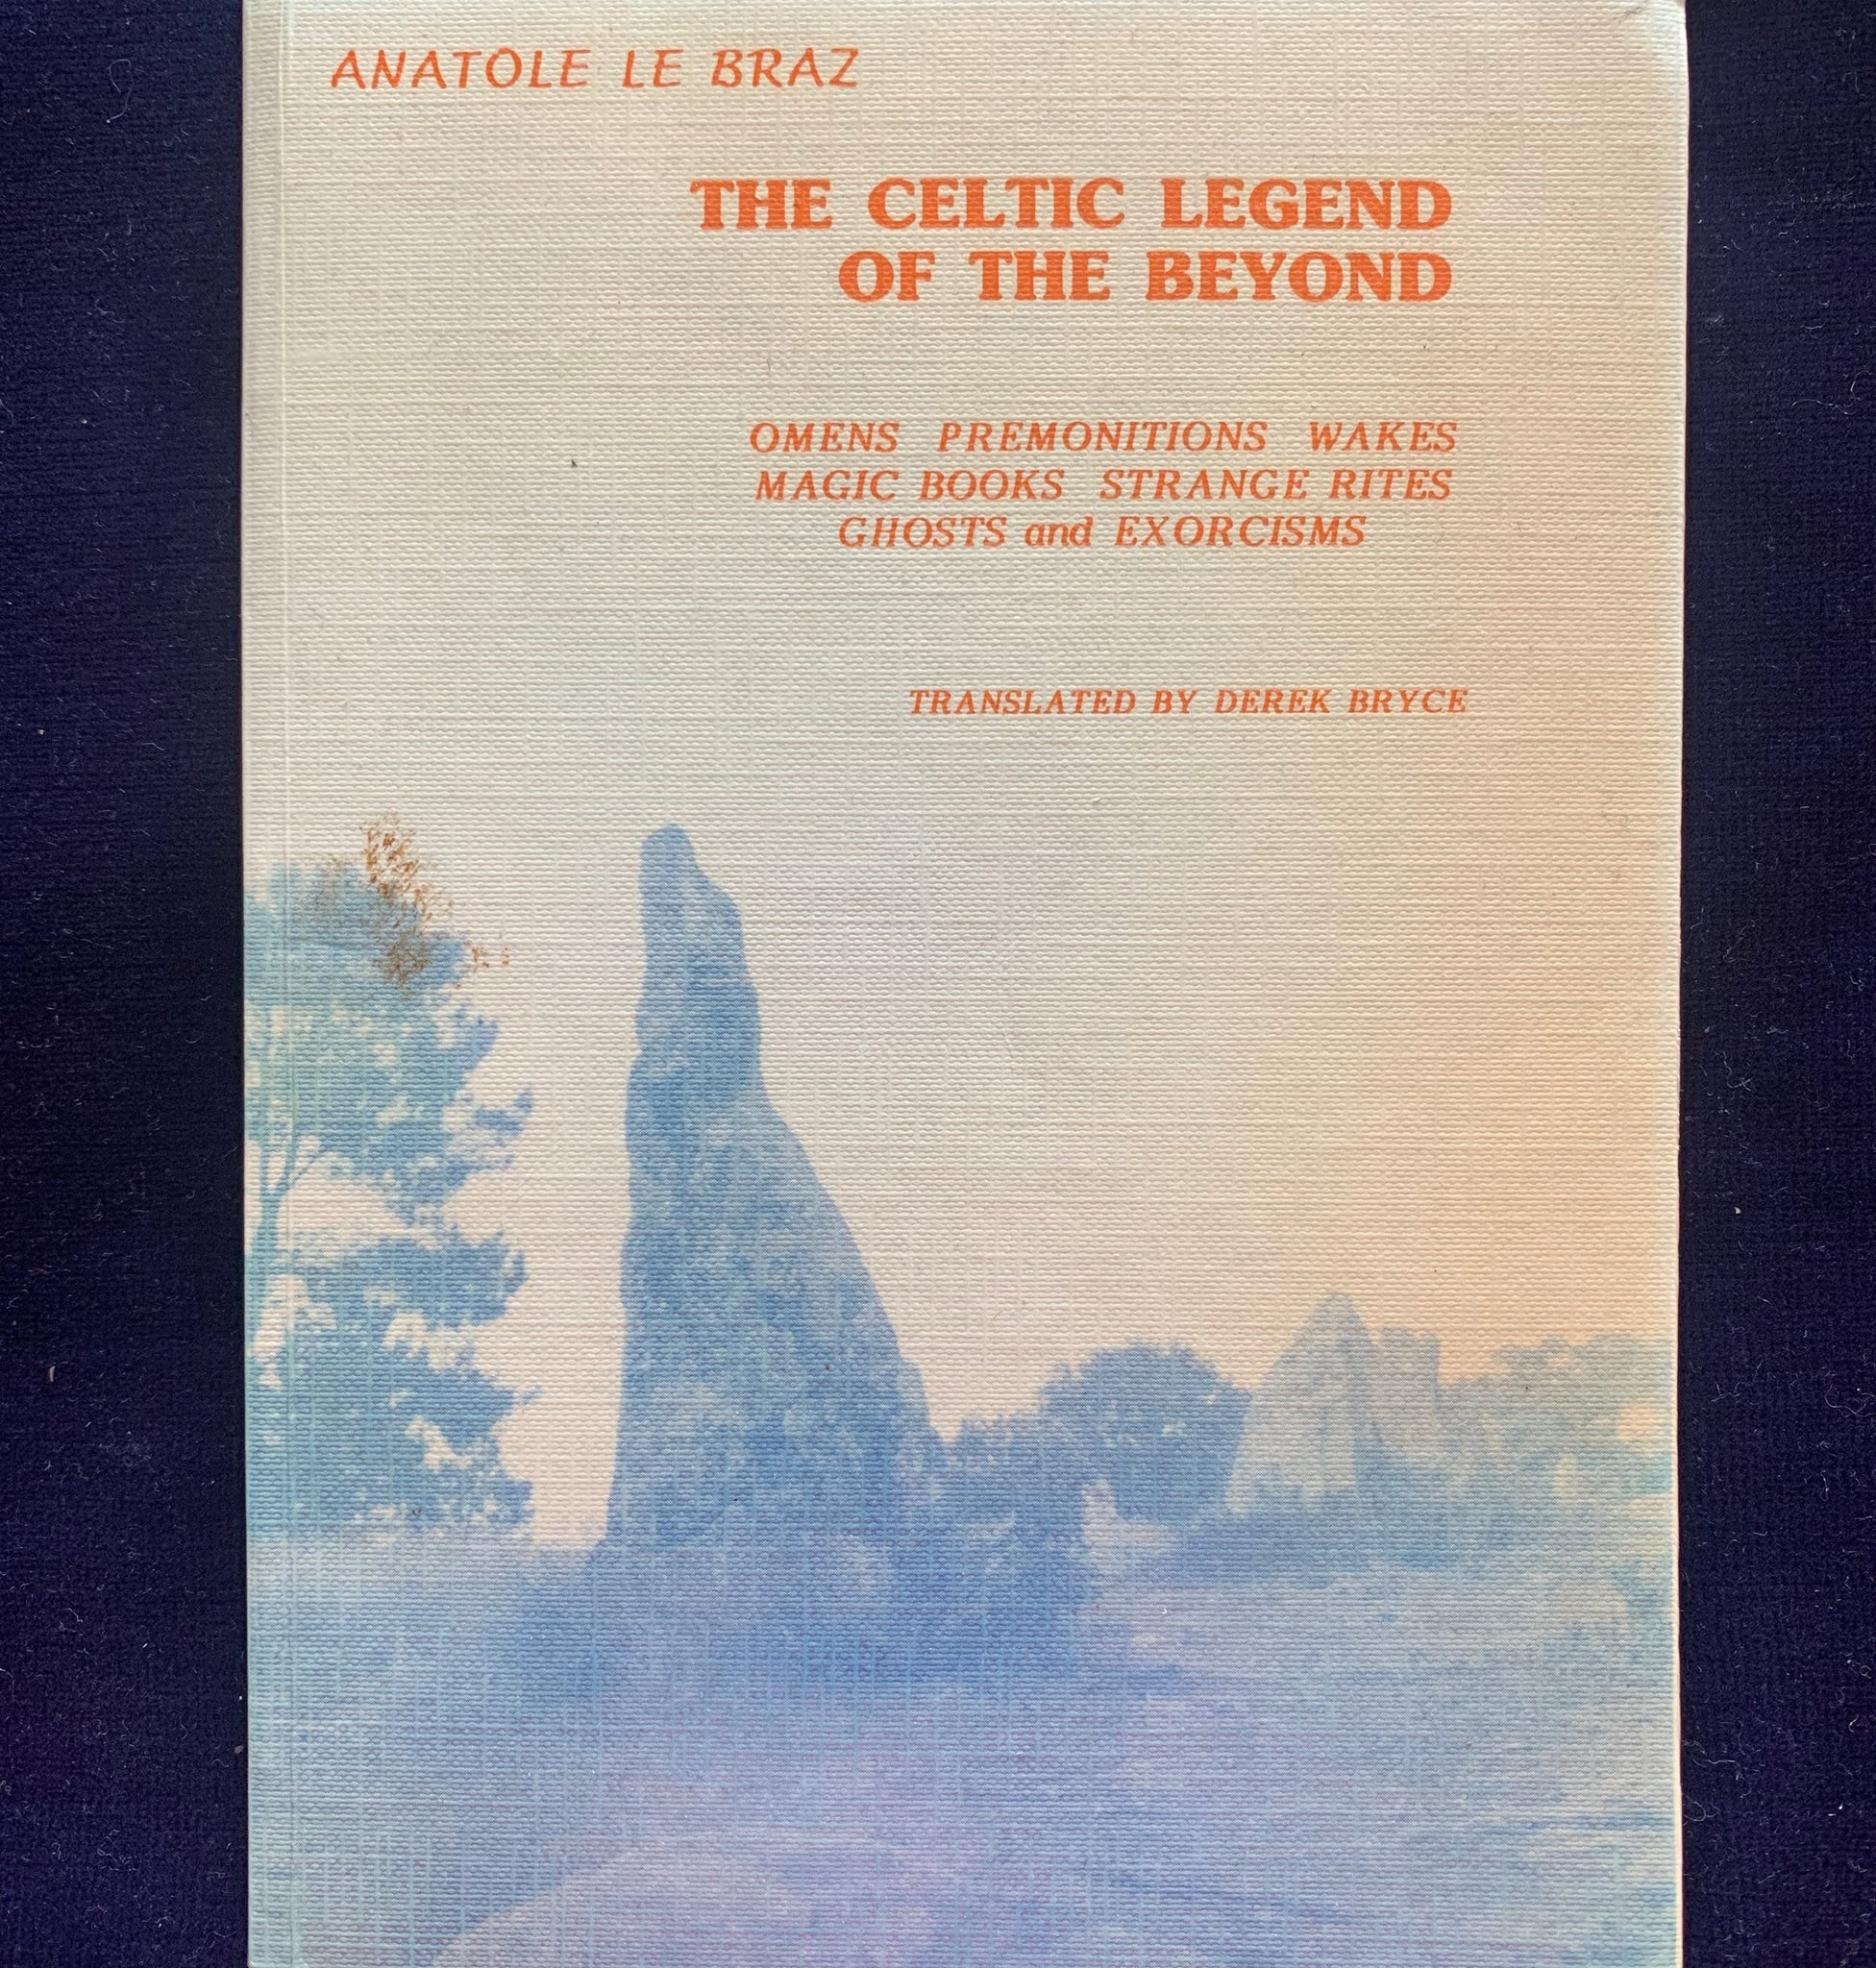 The Celtic Legend of the Beyond